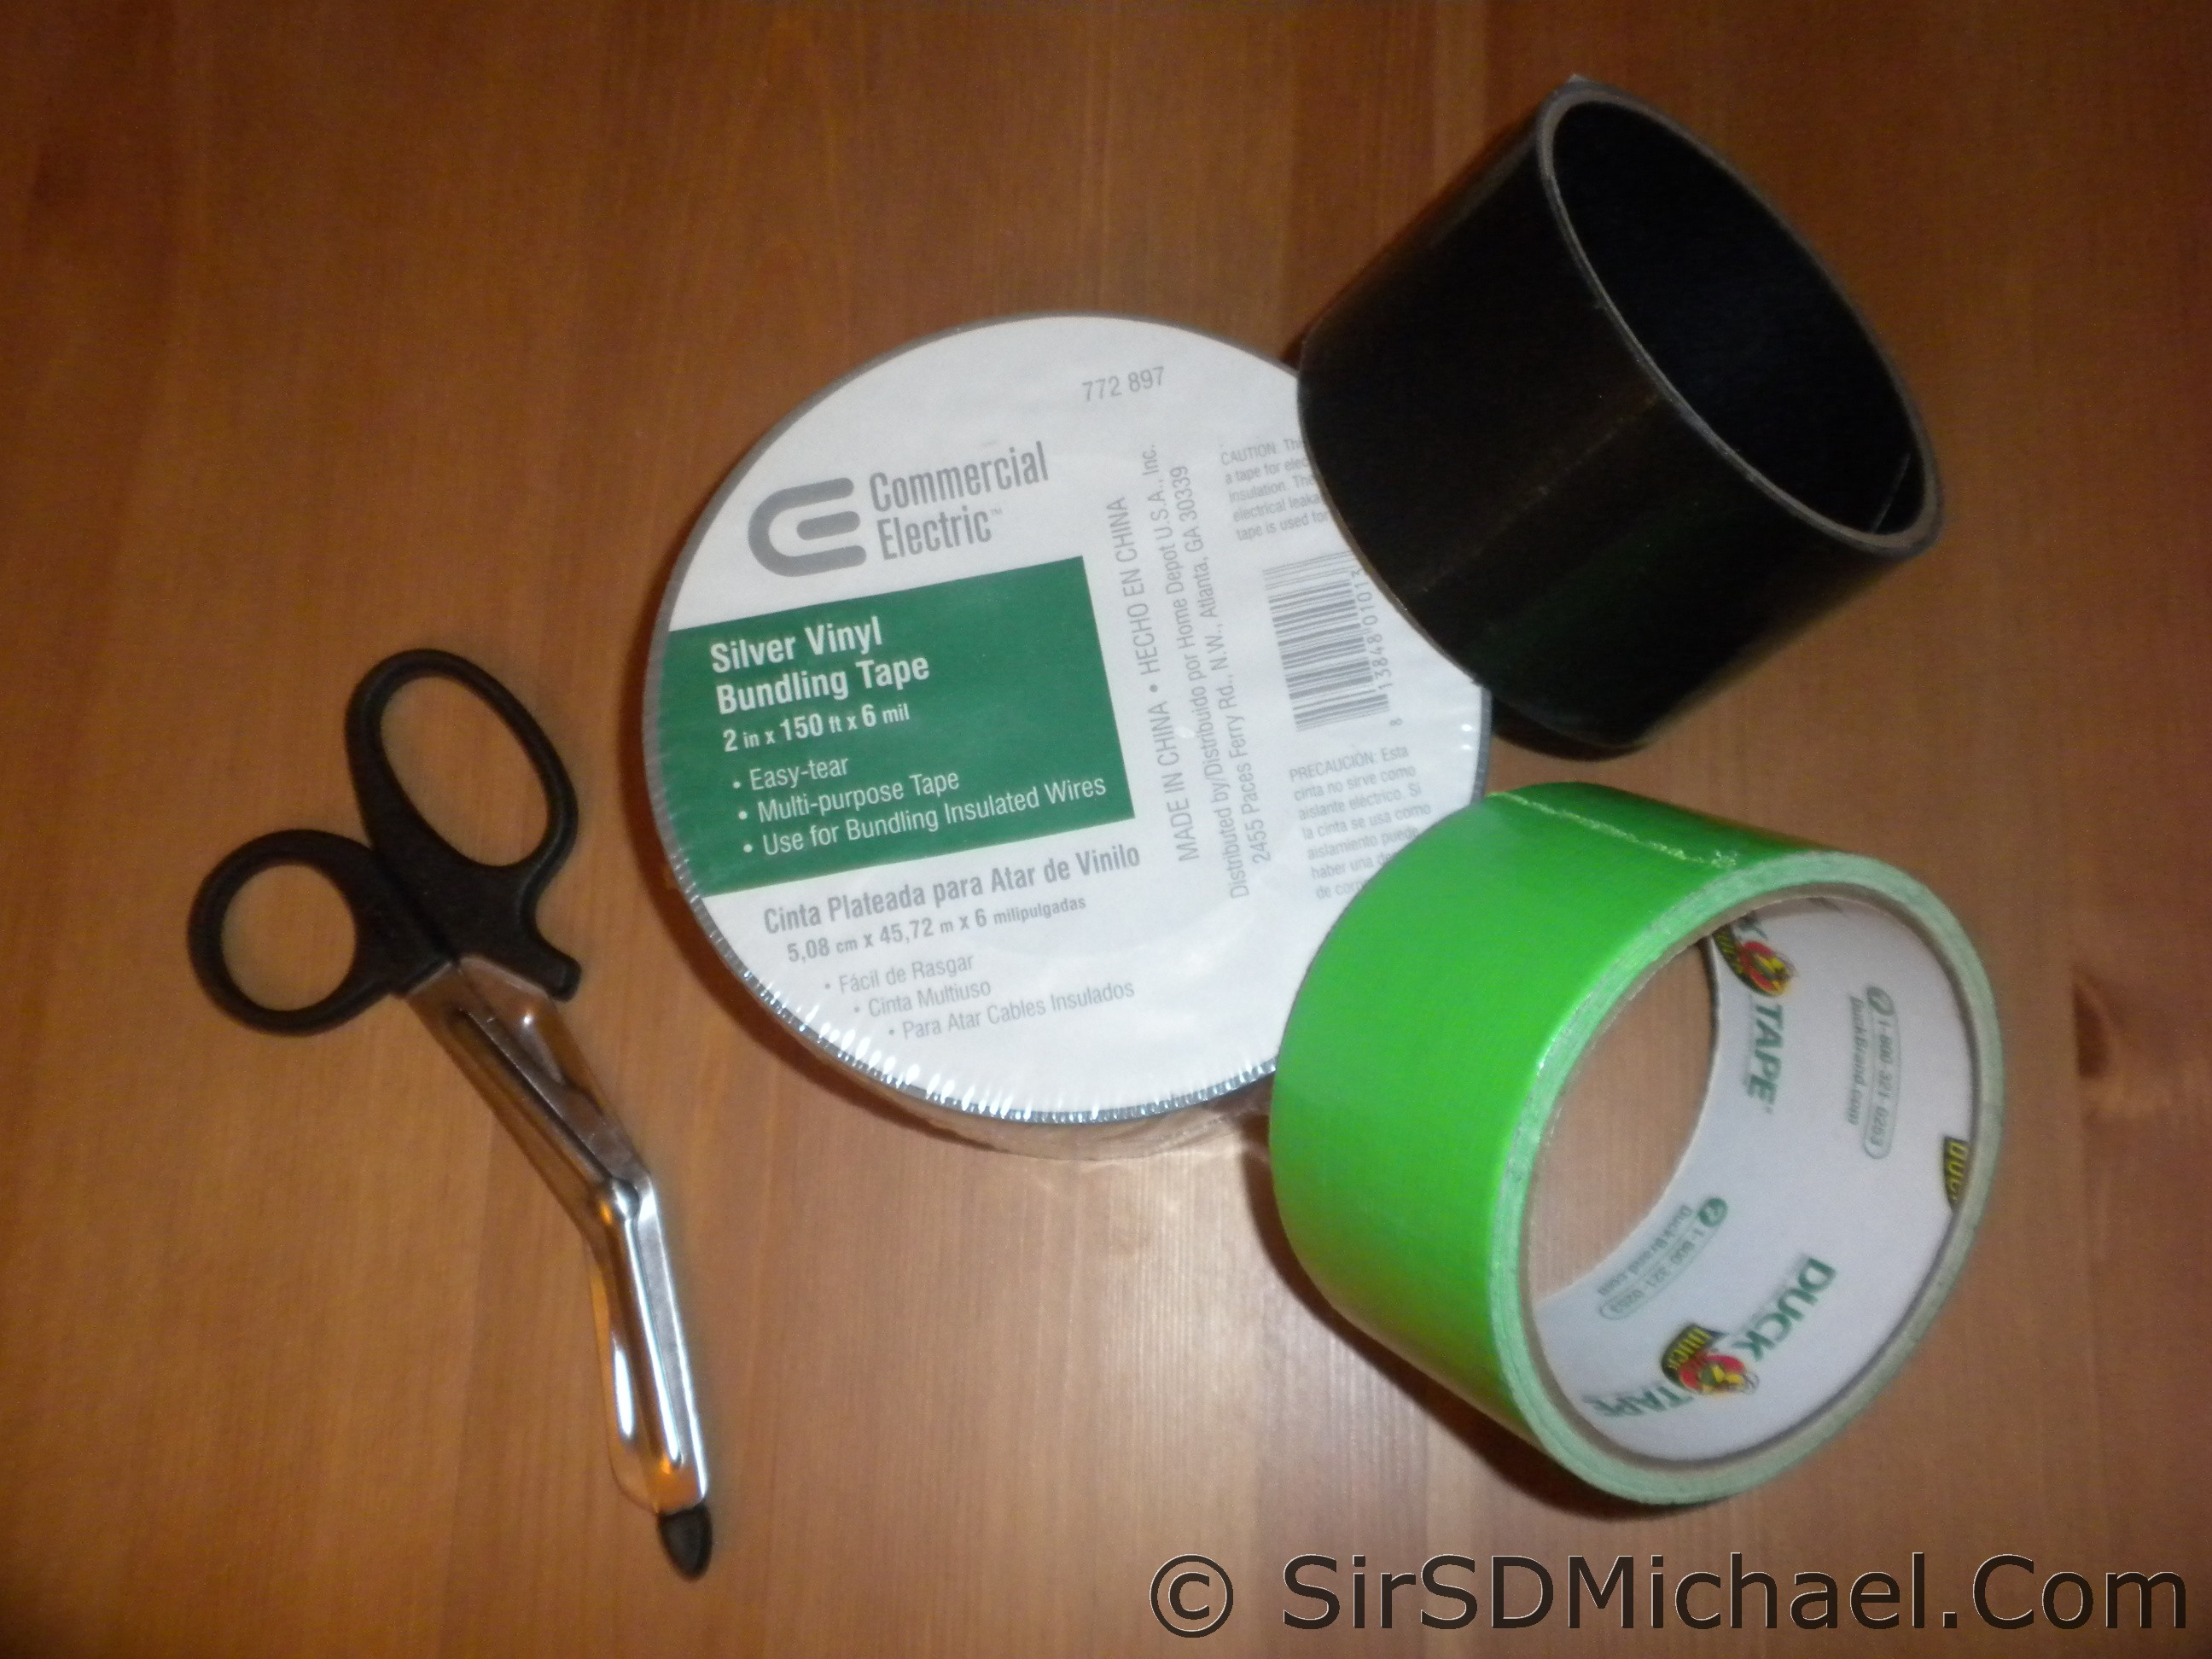 Different rolls of tape and a pair of Nurse's Scissors.